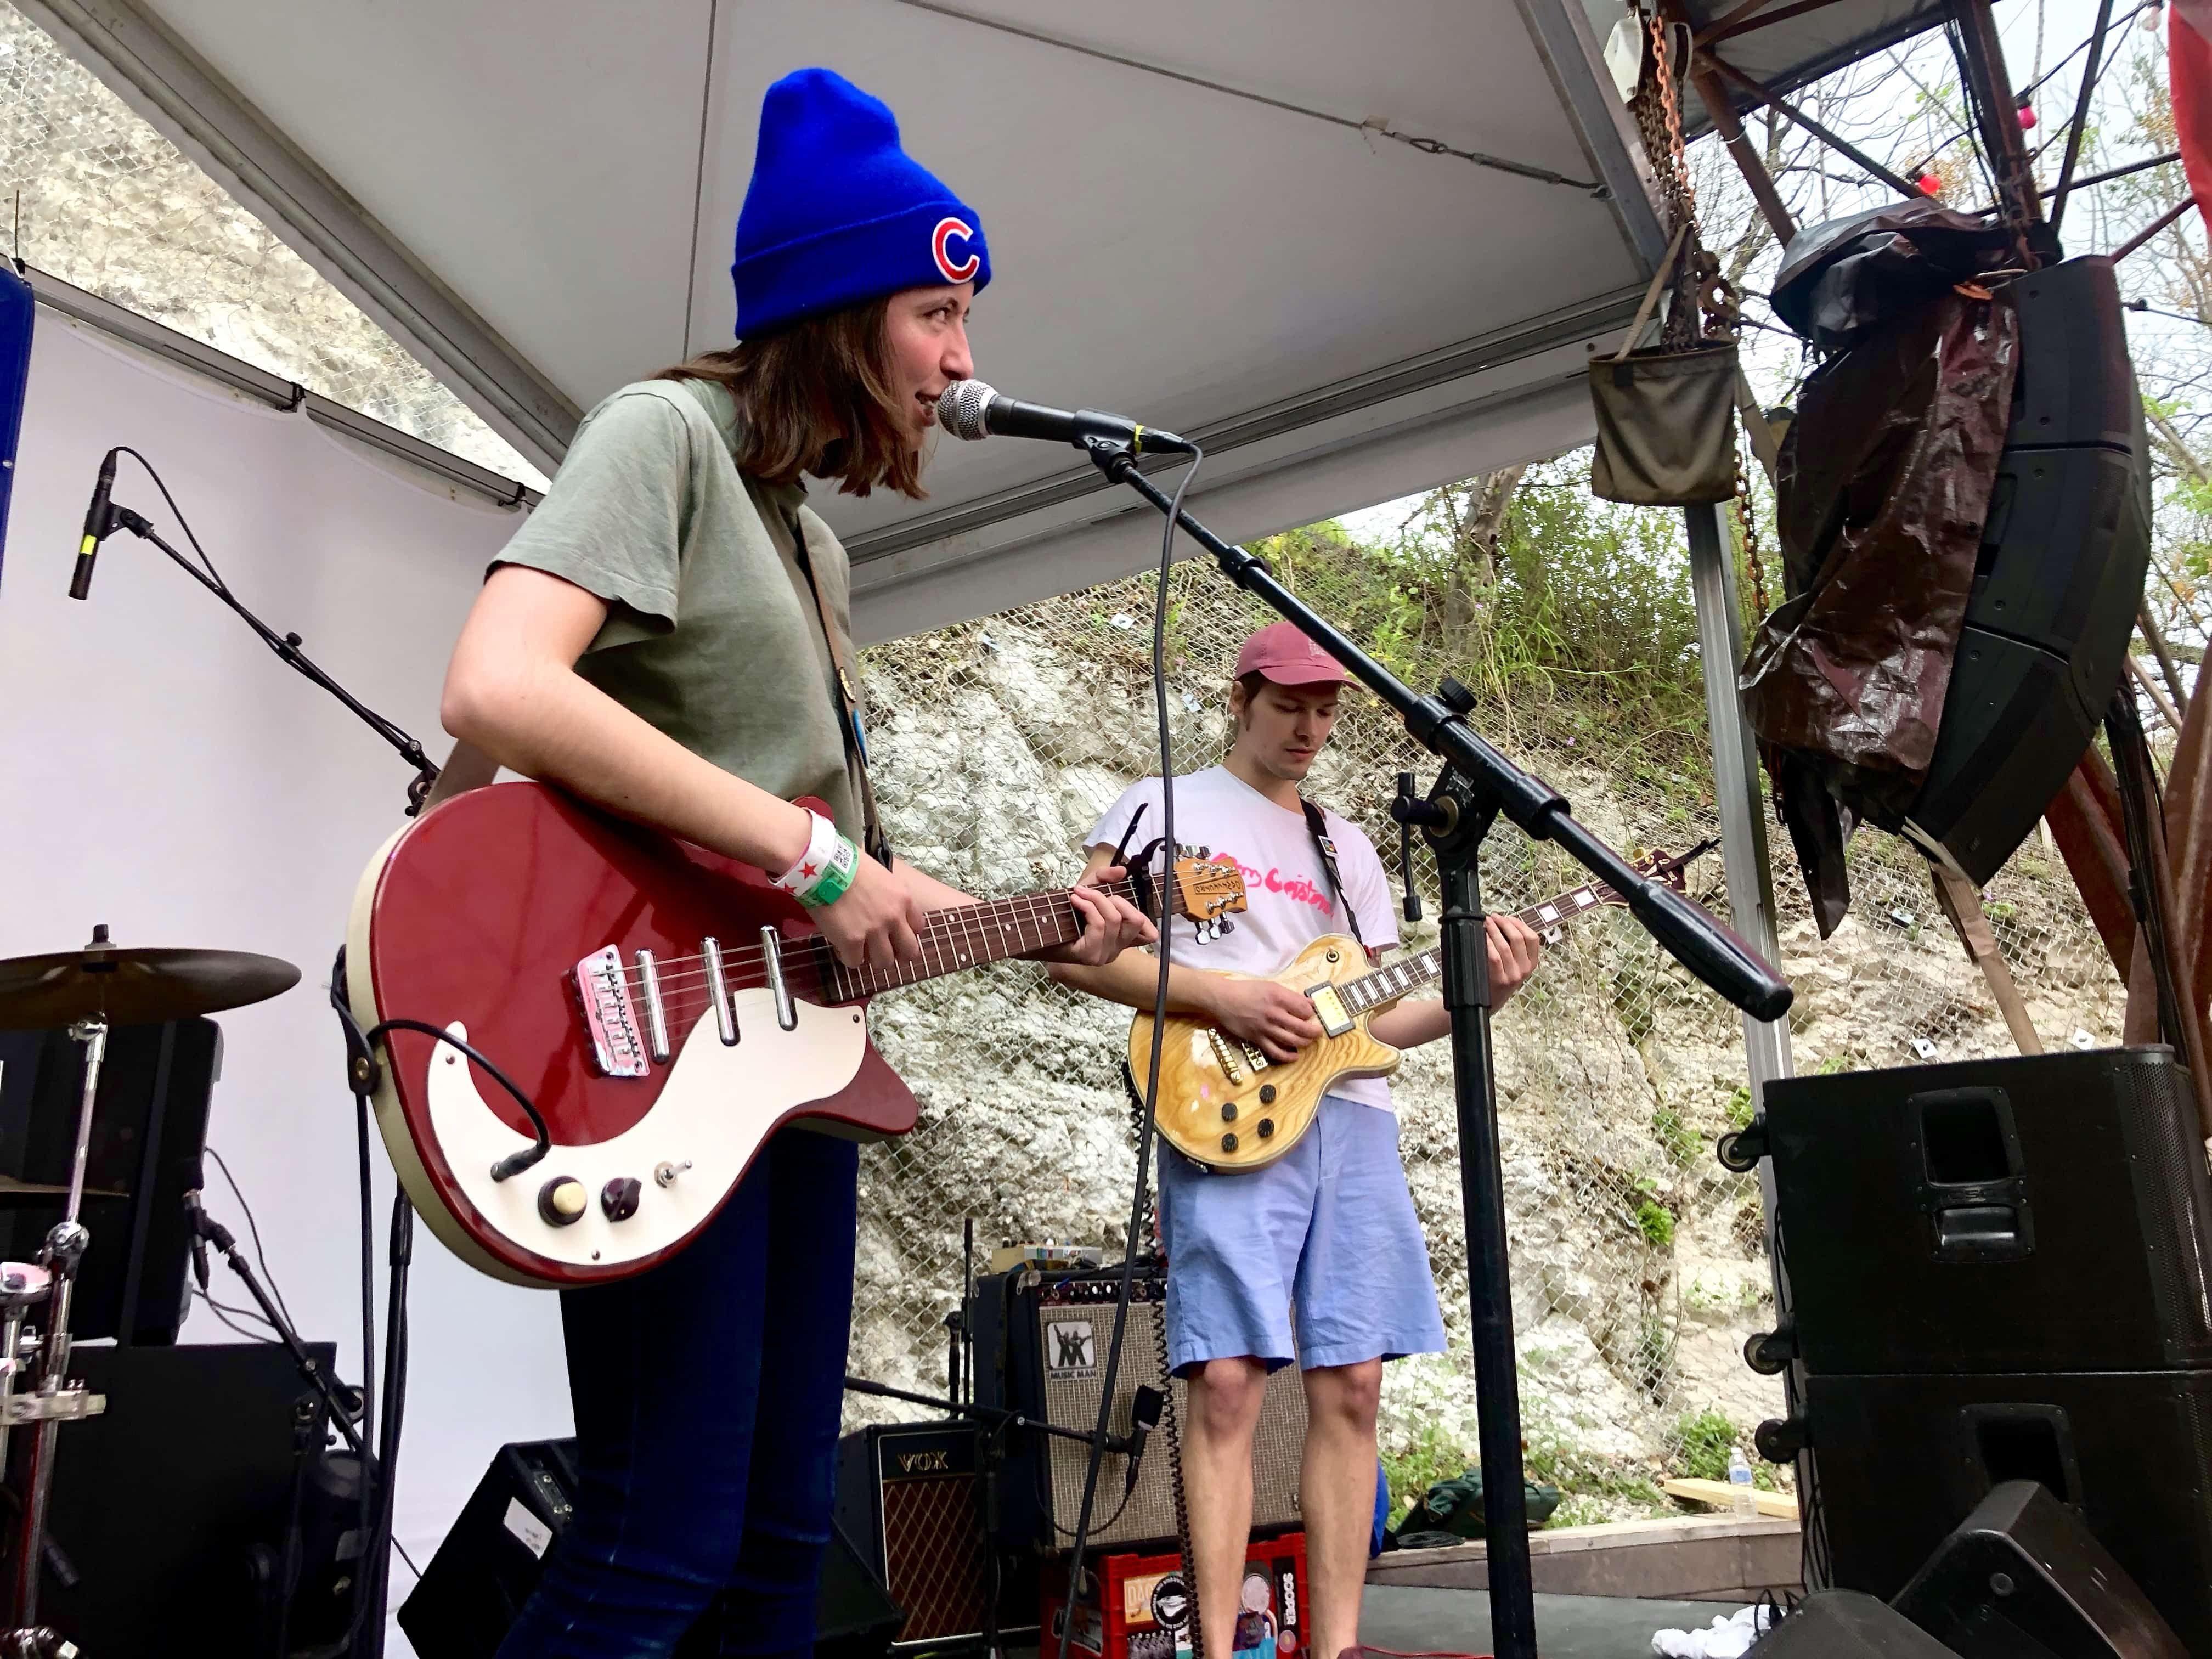 The Ratboys at SXSW music festival 2019.